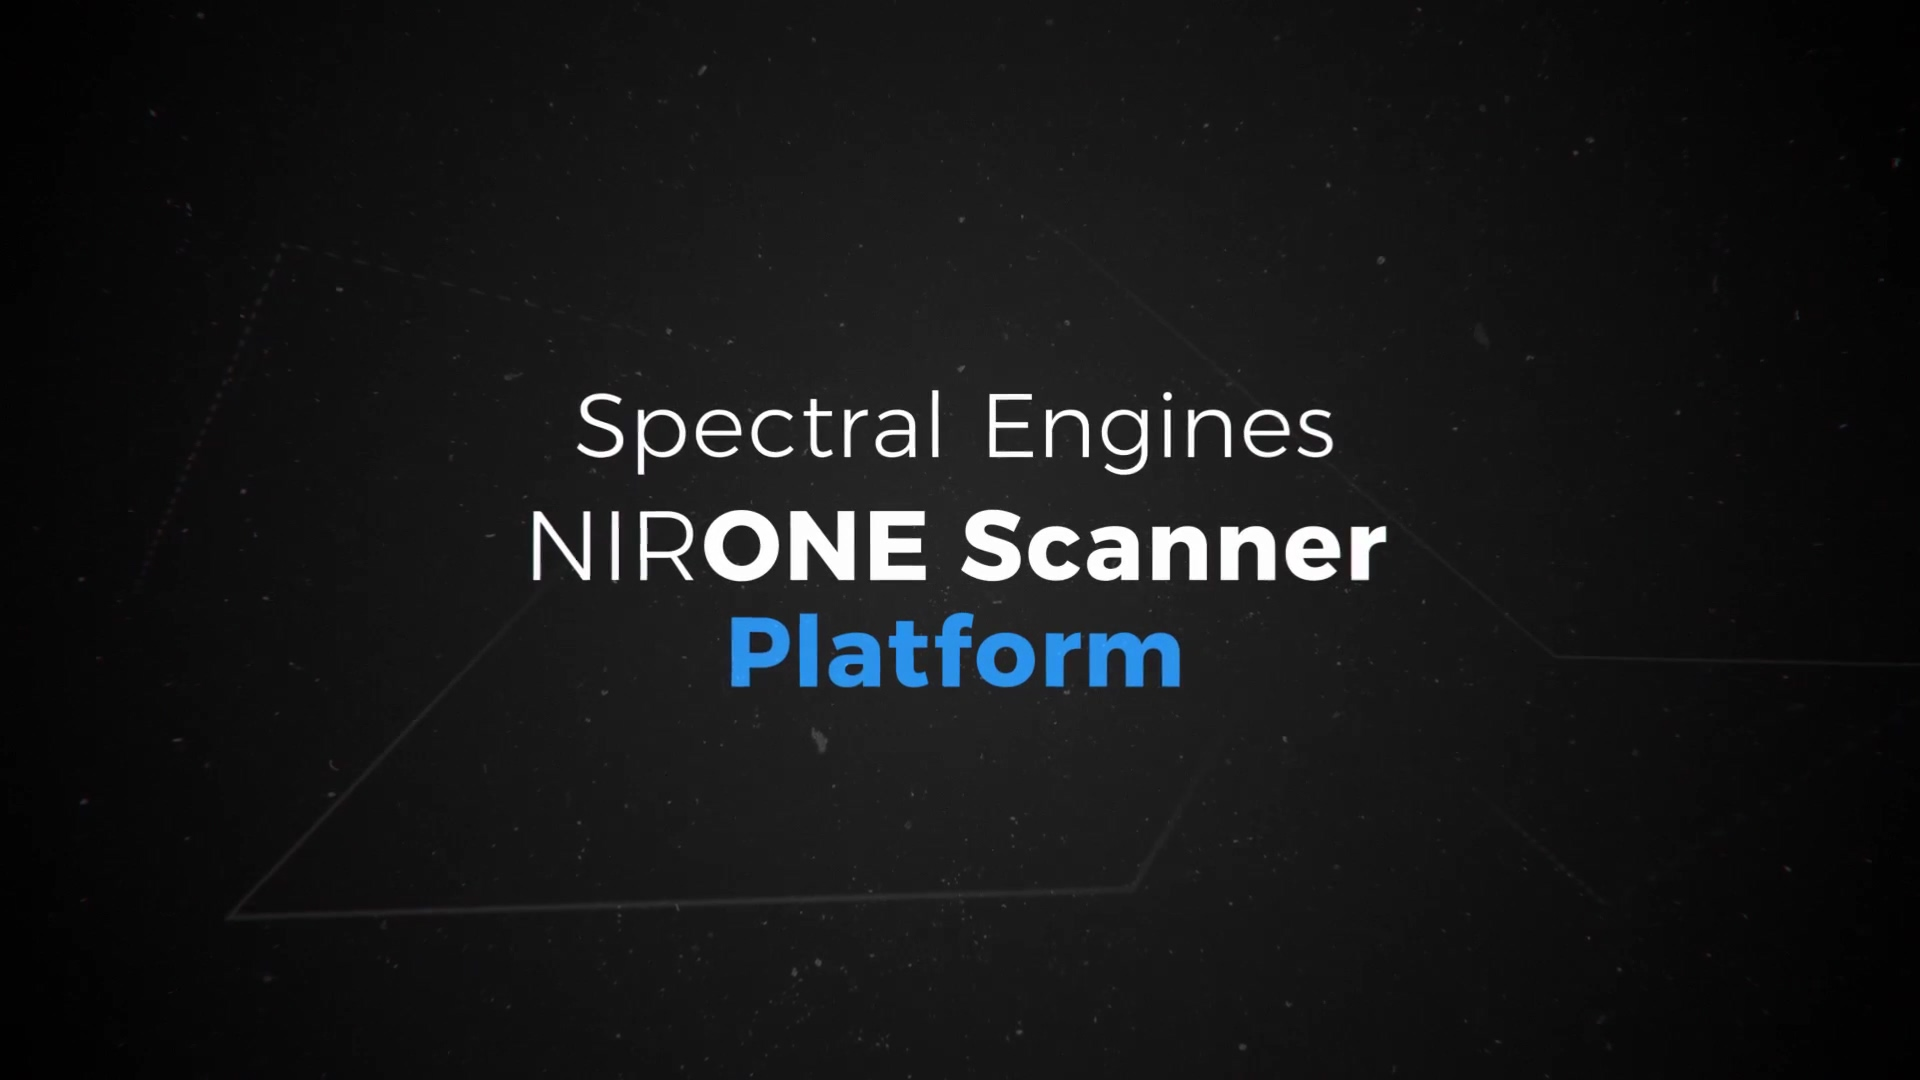 spectral_engines_nirone_scanner_platform_create_a_future_of_possibilities_1080p_1